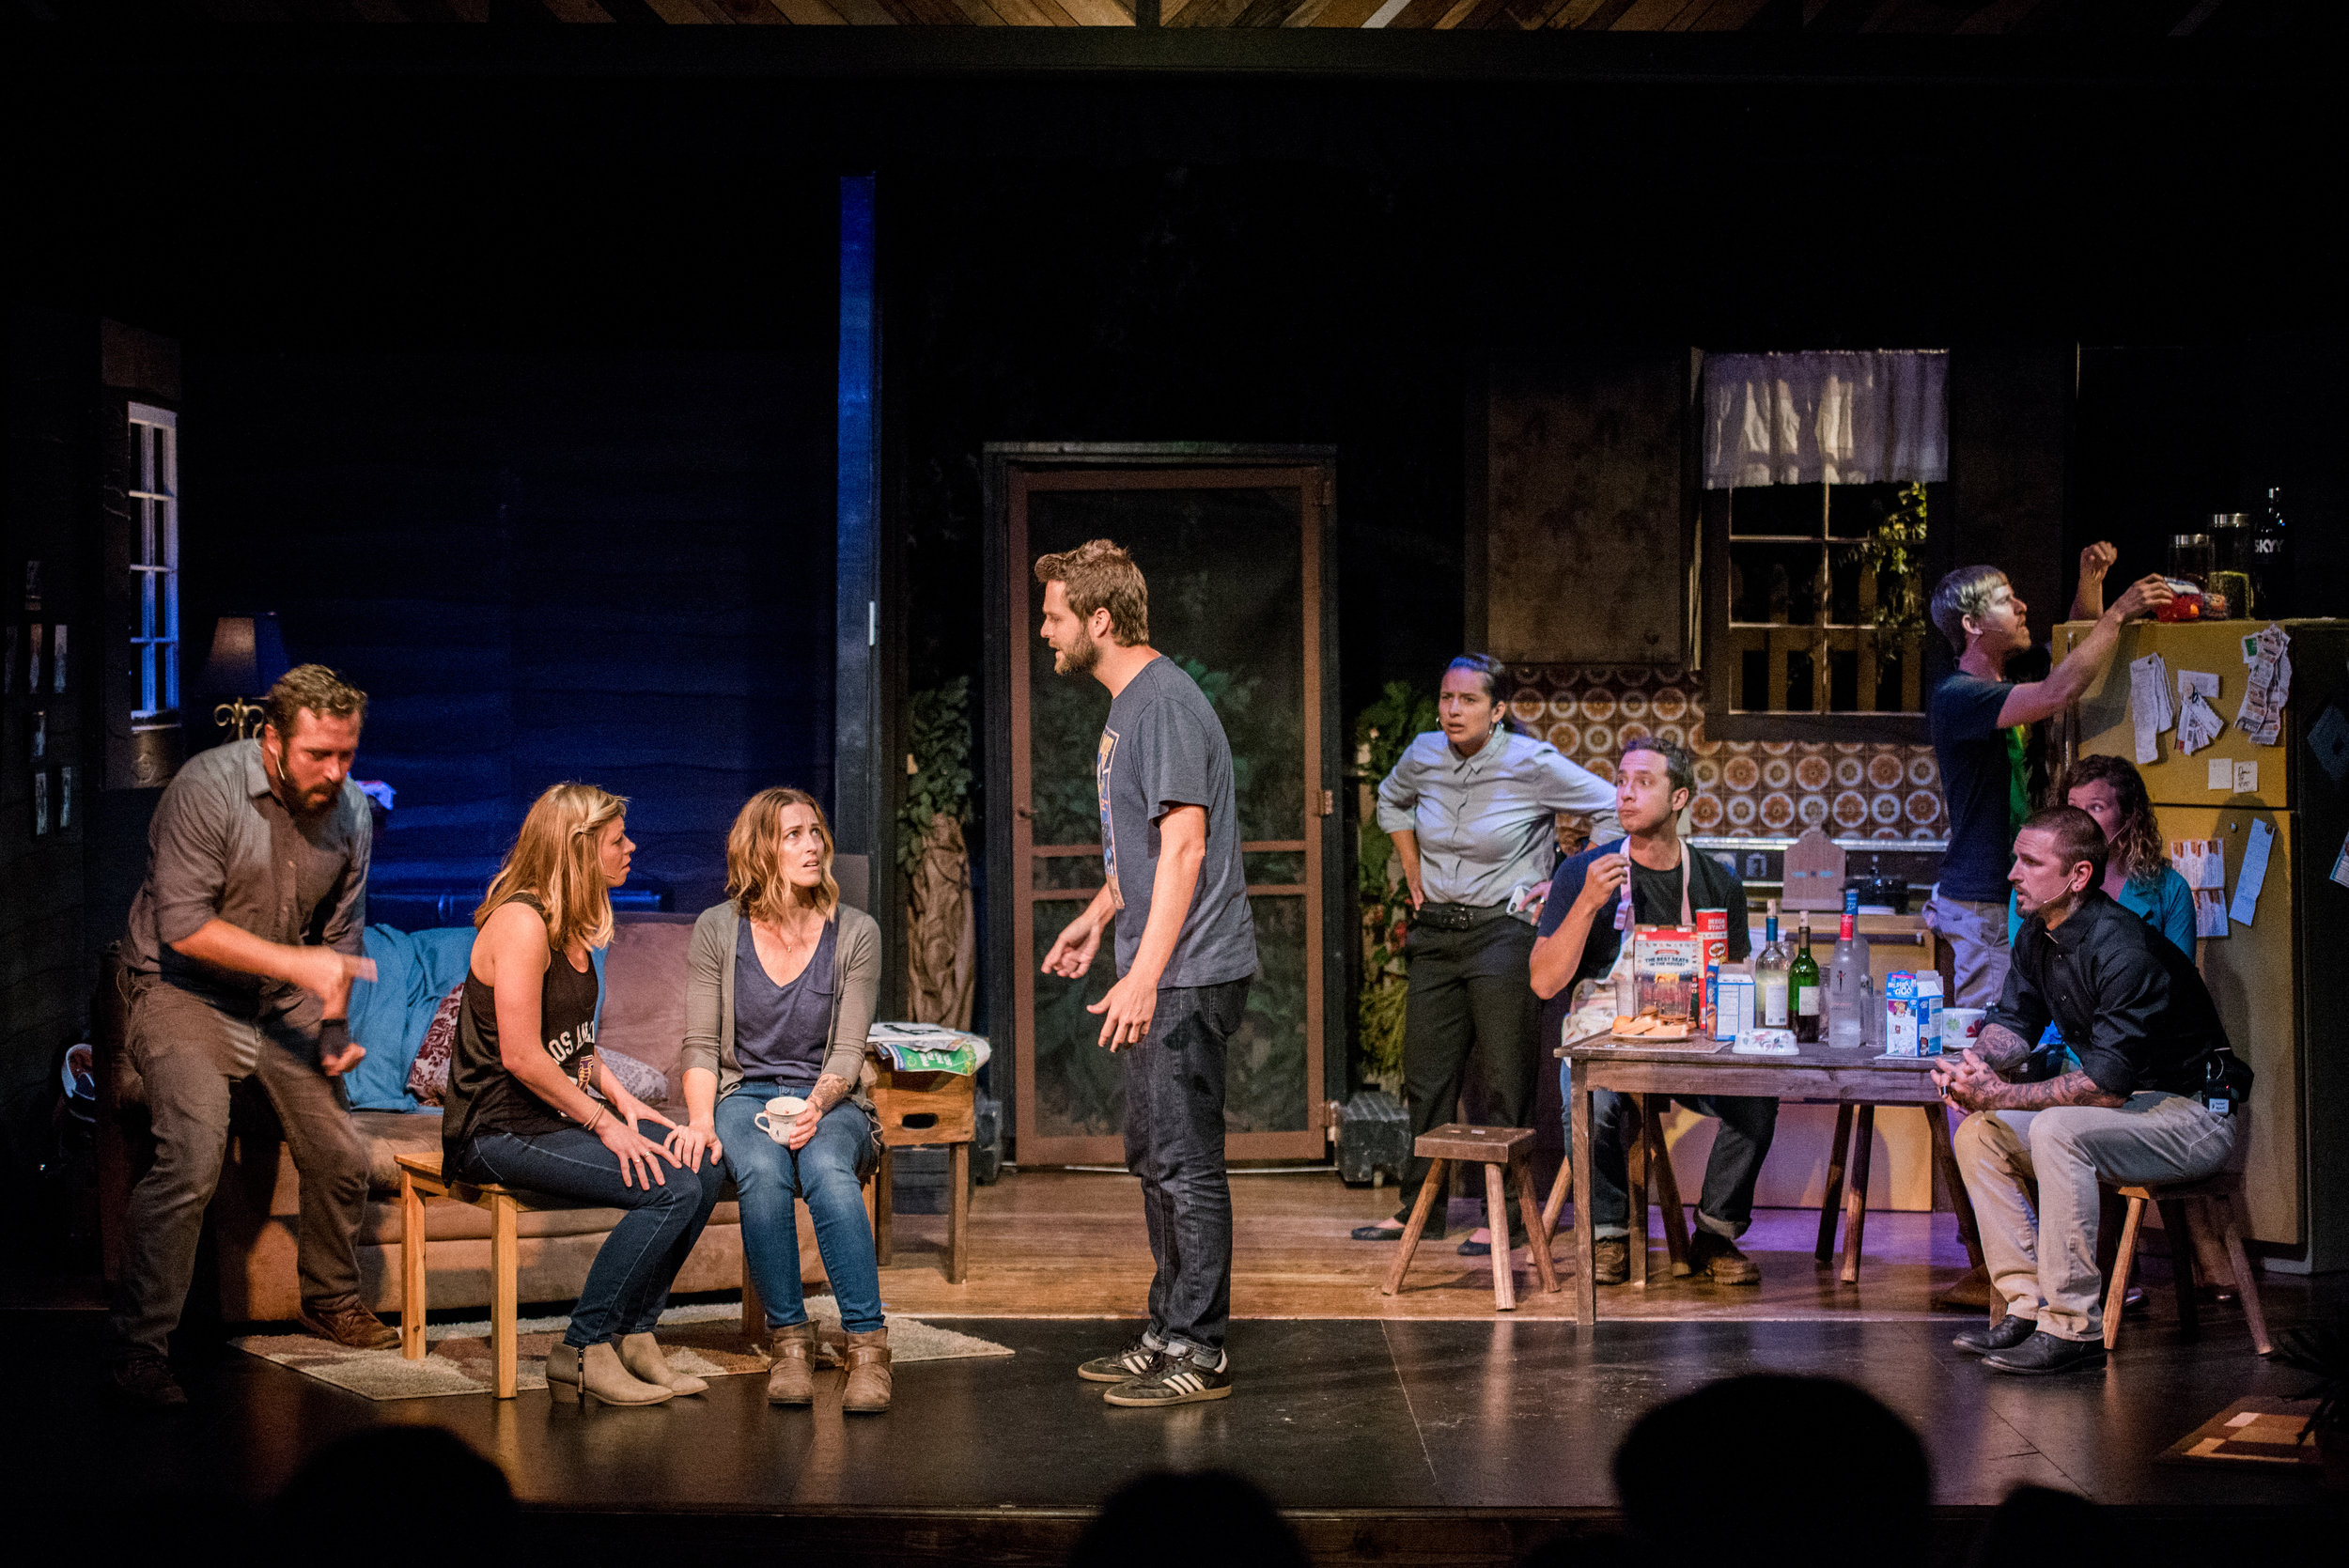 """The four Clark siblings (left) and their various friends, significant others, detectives and neighbors share the stage, all of them affected by the """"dysfunctional functionality"""" of family dynamics."""